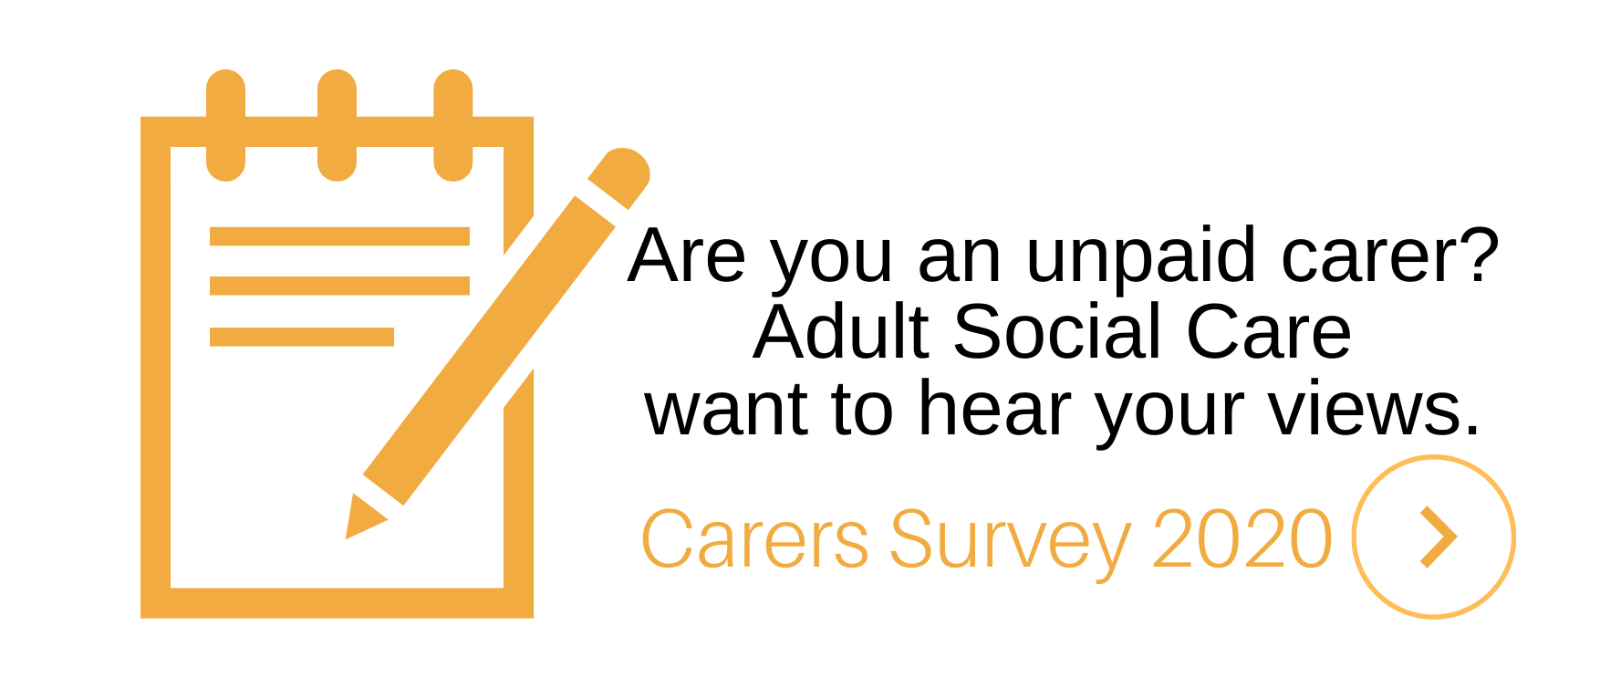 Are you an unpaid carer? Adult social care want to hear your views. Click here for the survey.